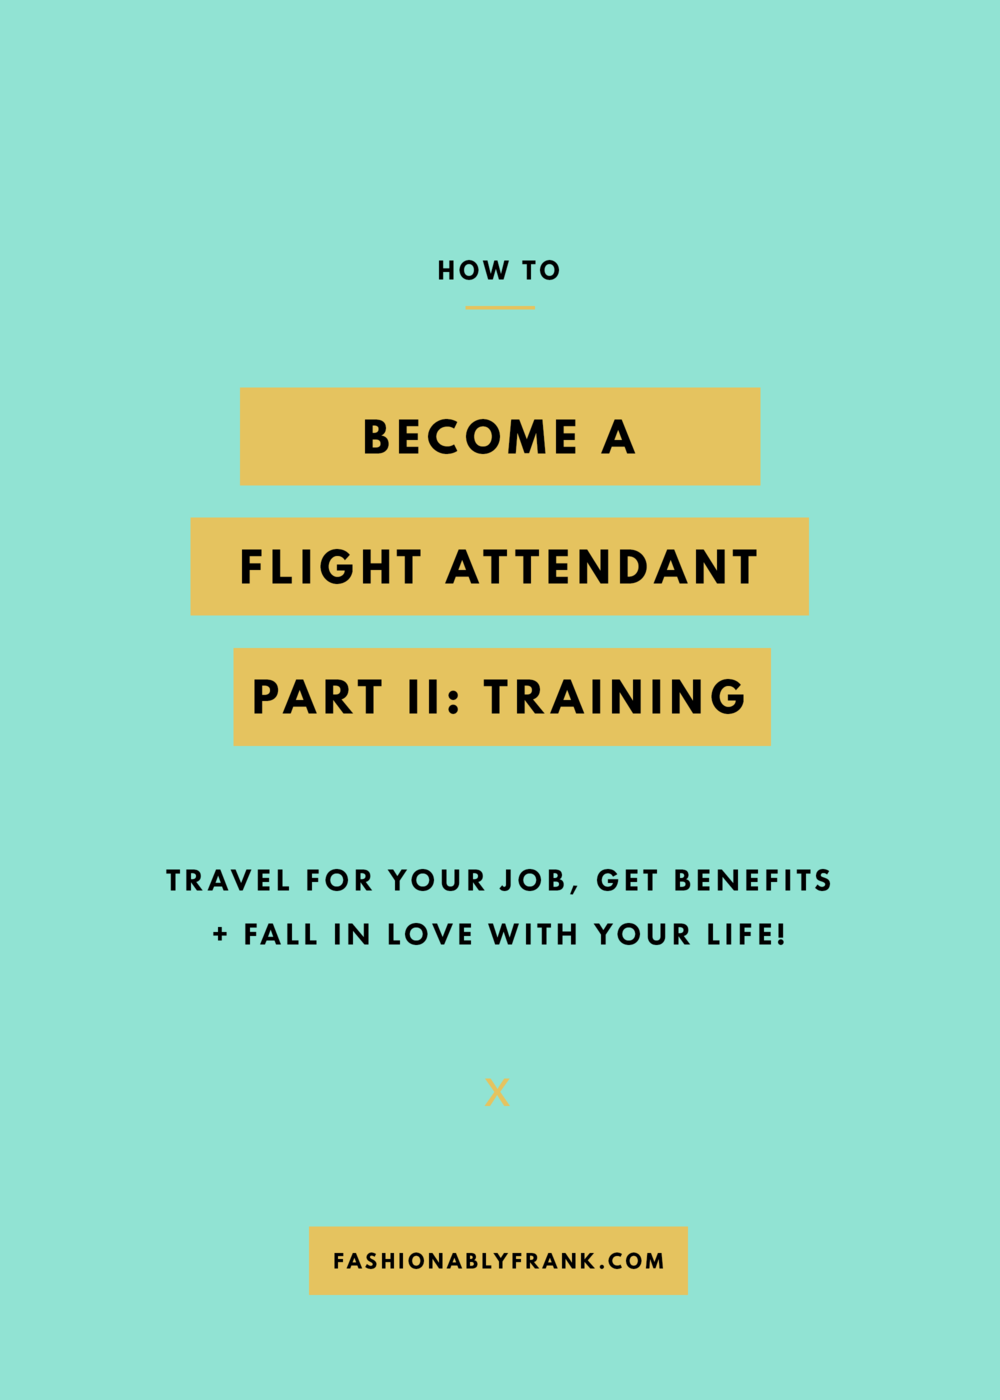 how to become a flight attendant training.png